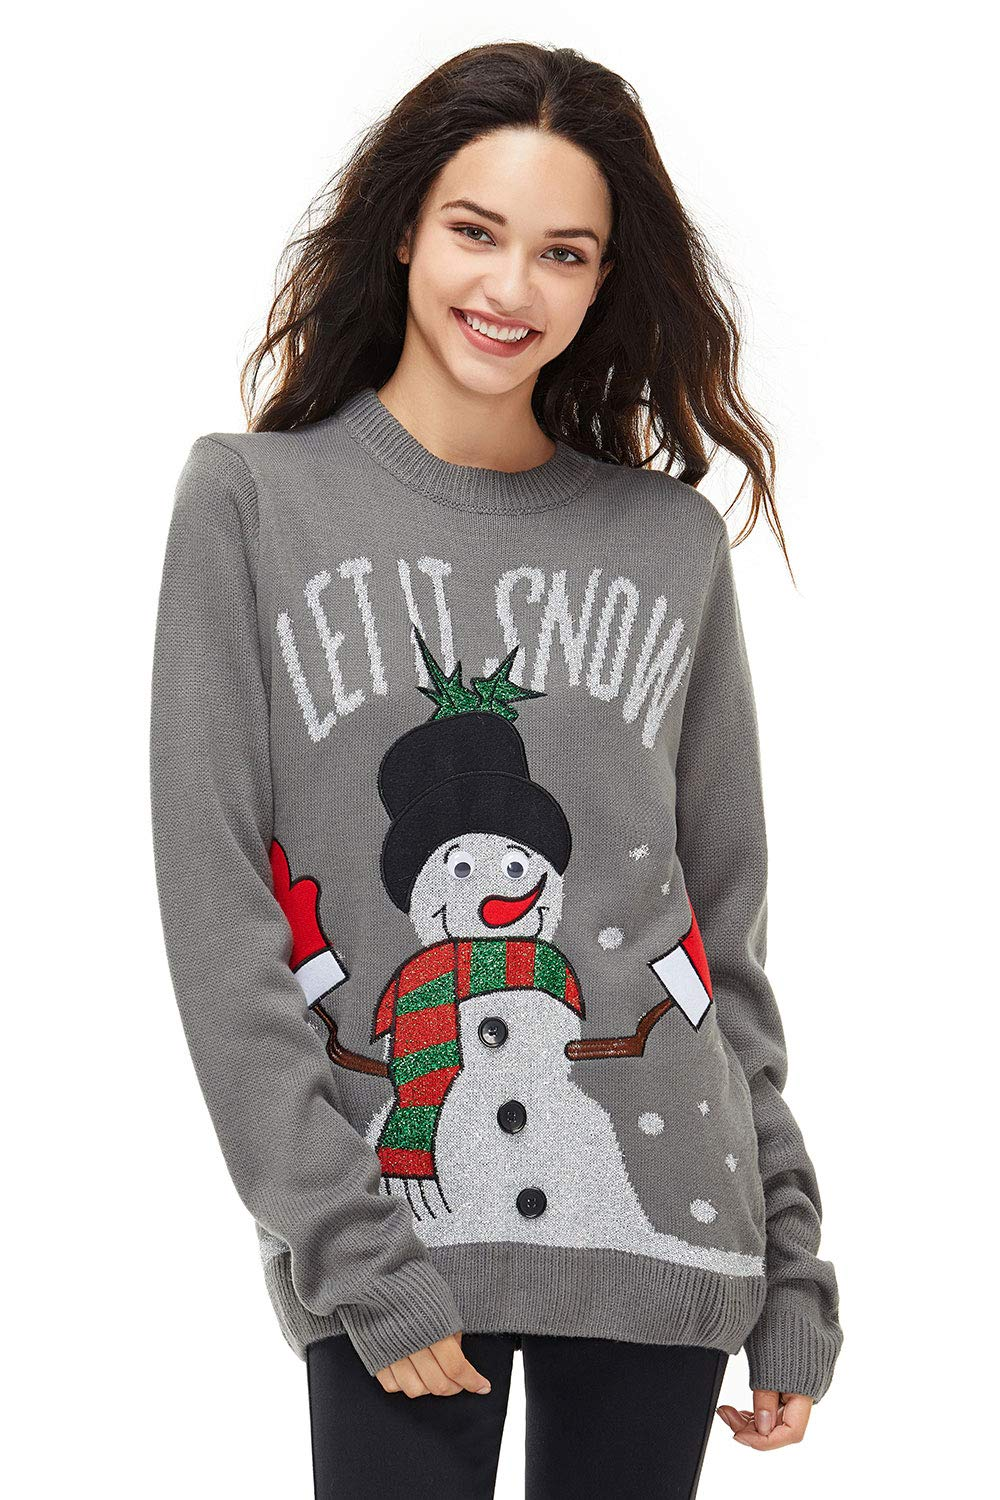 Women's Christmas Ugly Sweater Funny Knit Novelty Pullover Reindeer Pom Poms Snowman, Large